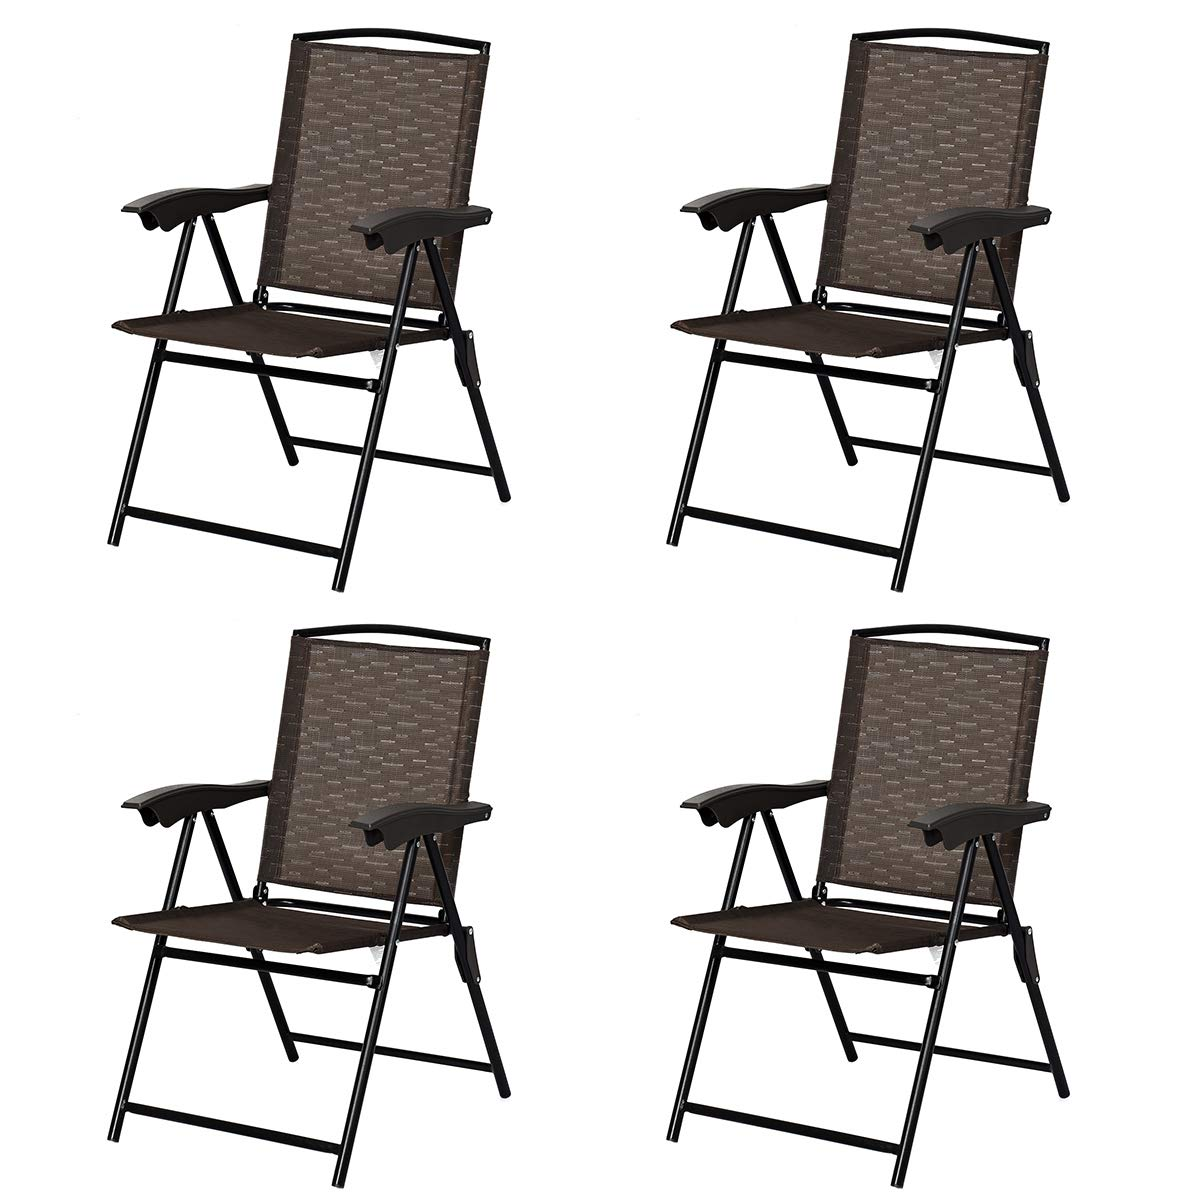 Goplus Sets of 4 Folding Sling Chairs Portable Chairs for Patio Garden Pool Outdoor & Indoor w/Armrests by Goplus (Image #1)